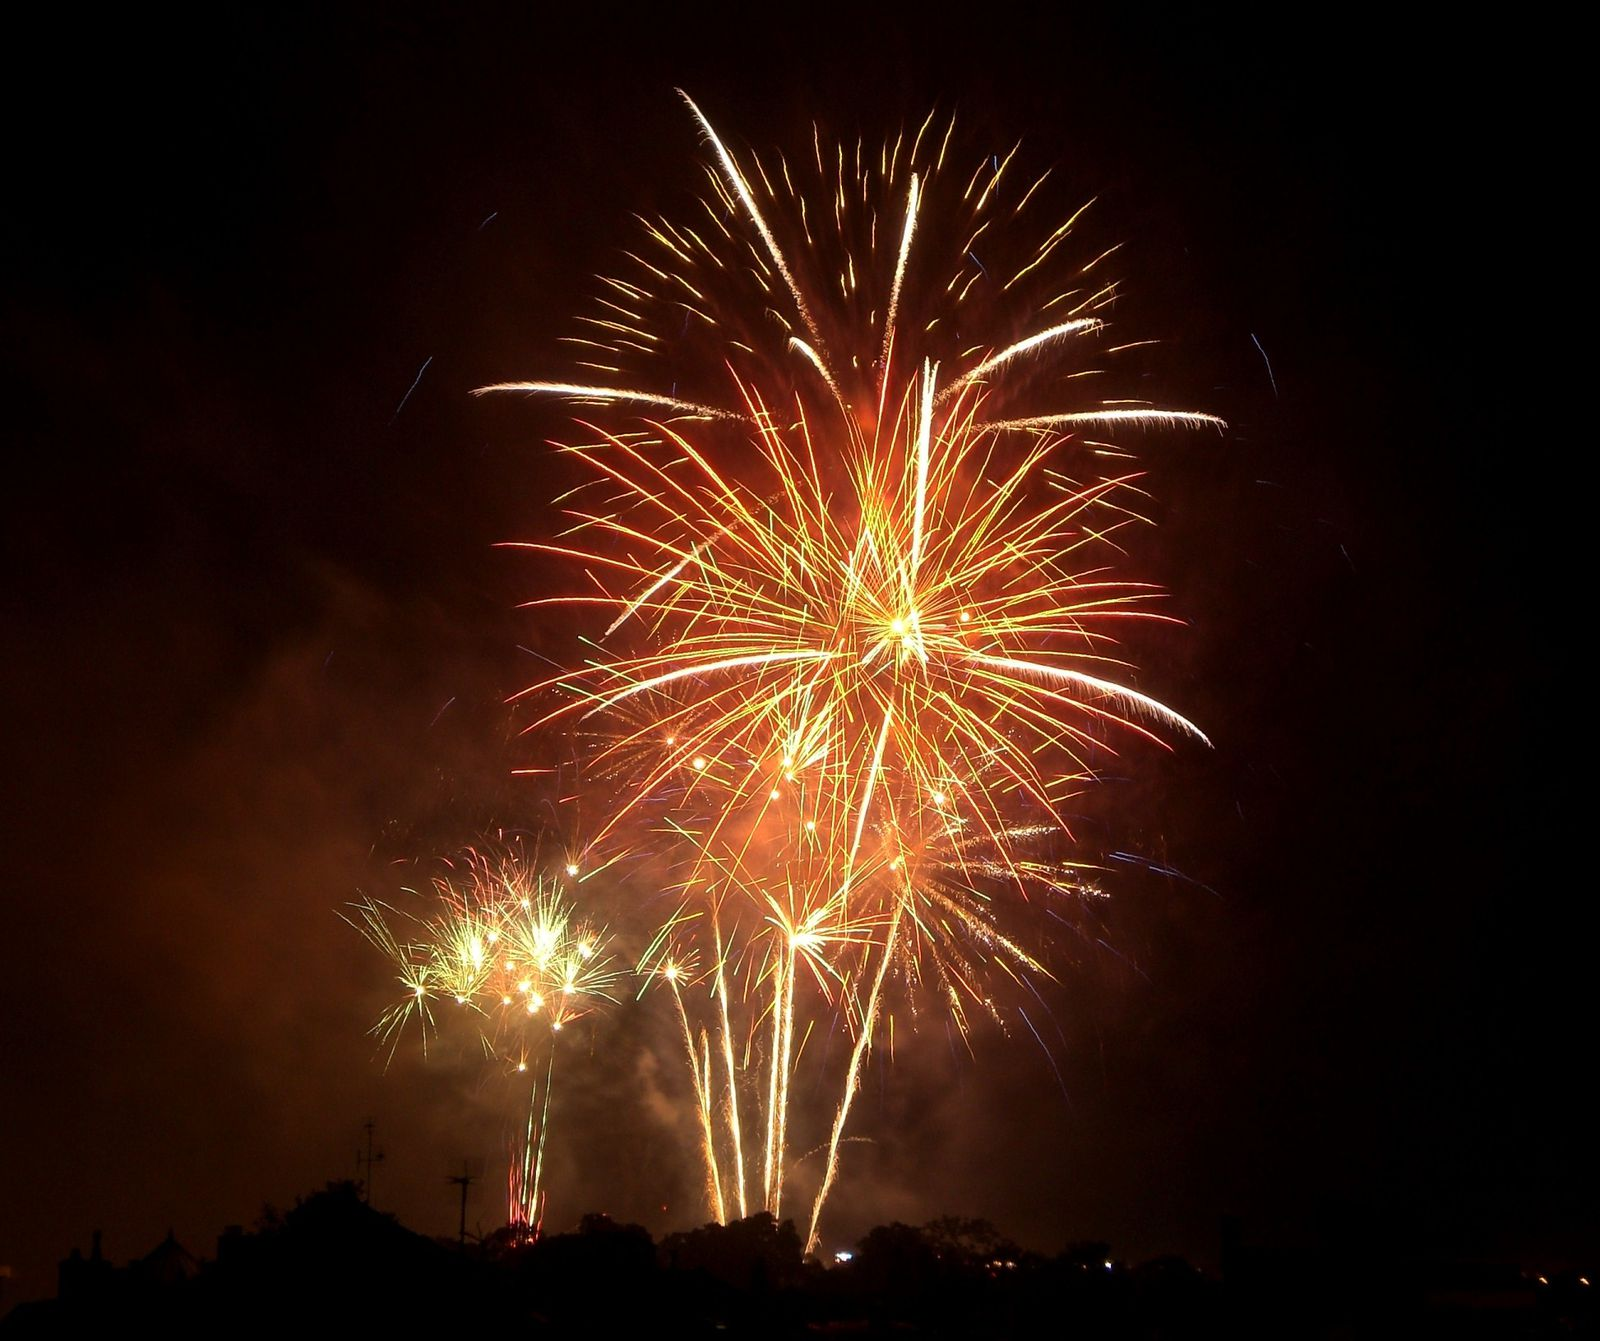 Bouquet-final-feu-d-artifice-2010.JPG